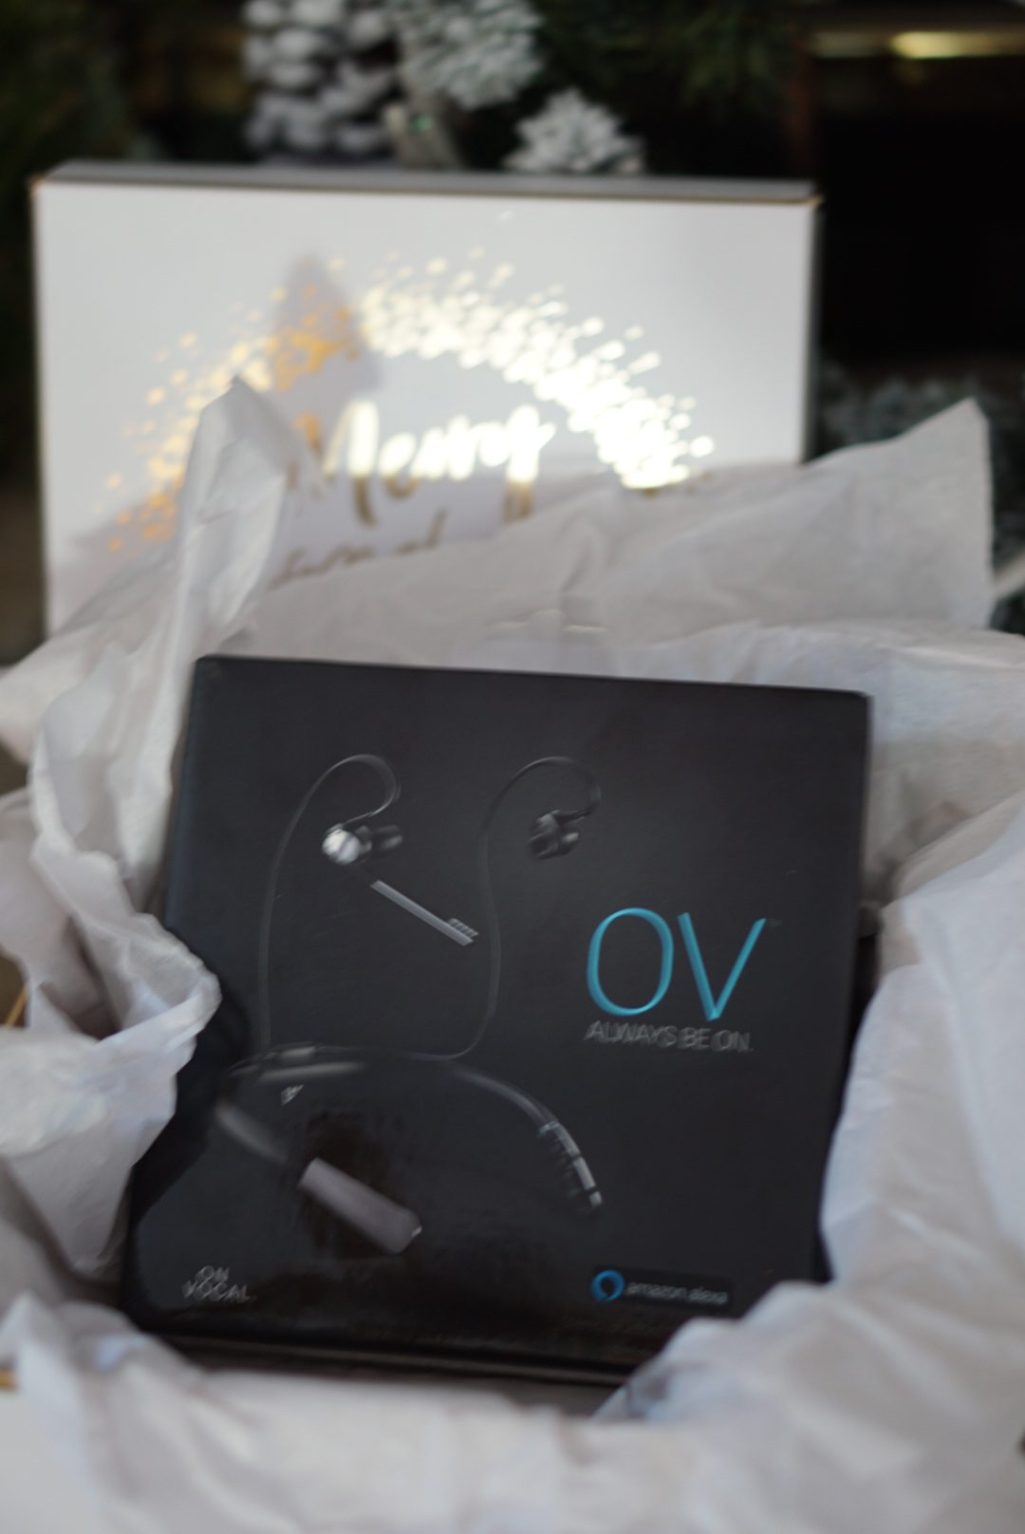 OV Smart Headphones Gifts for Him Holiday Gift Guide via Misty Nelson, blogger and influencer @frostedevents